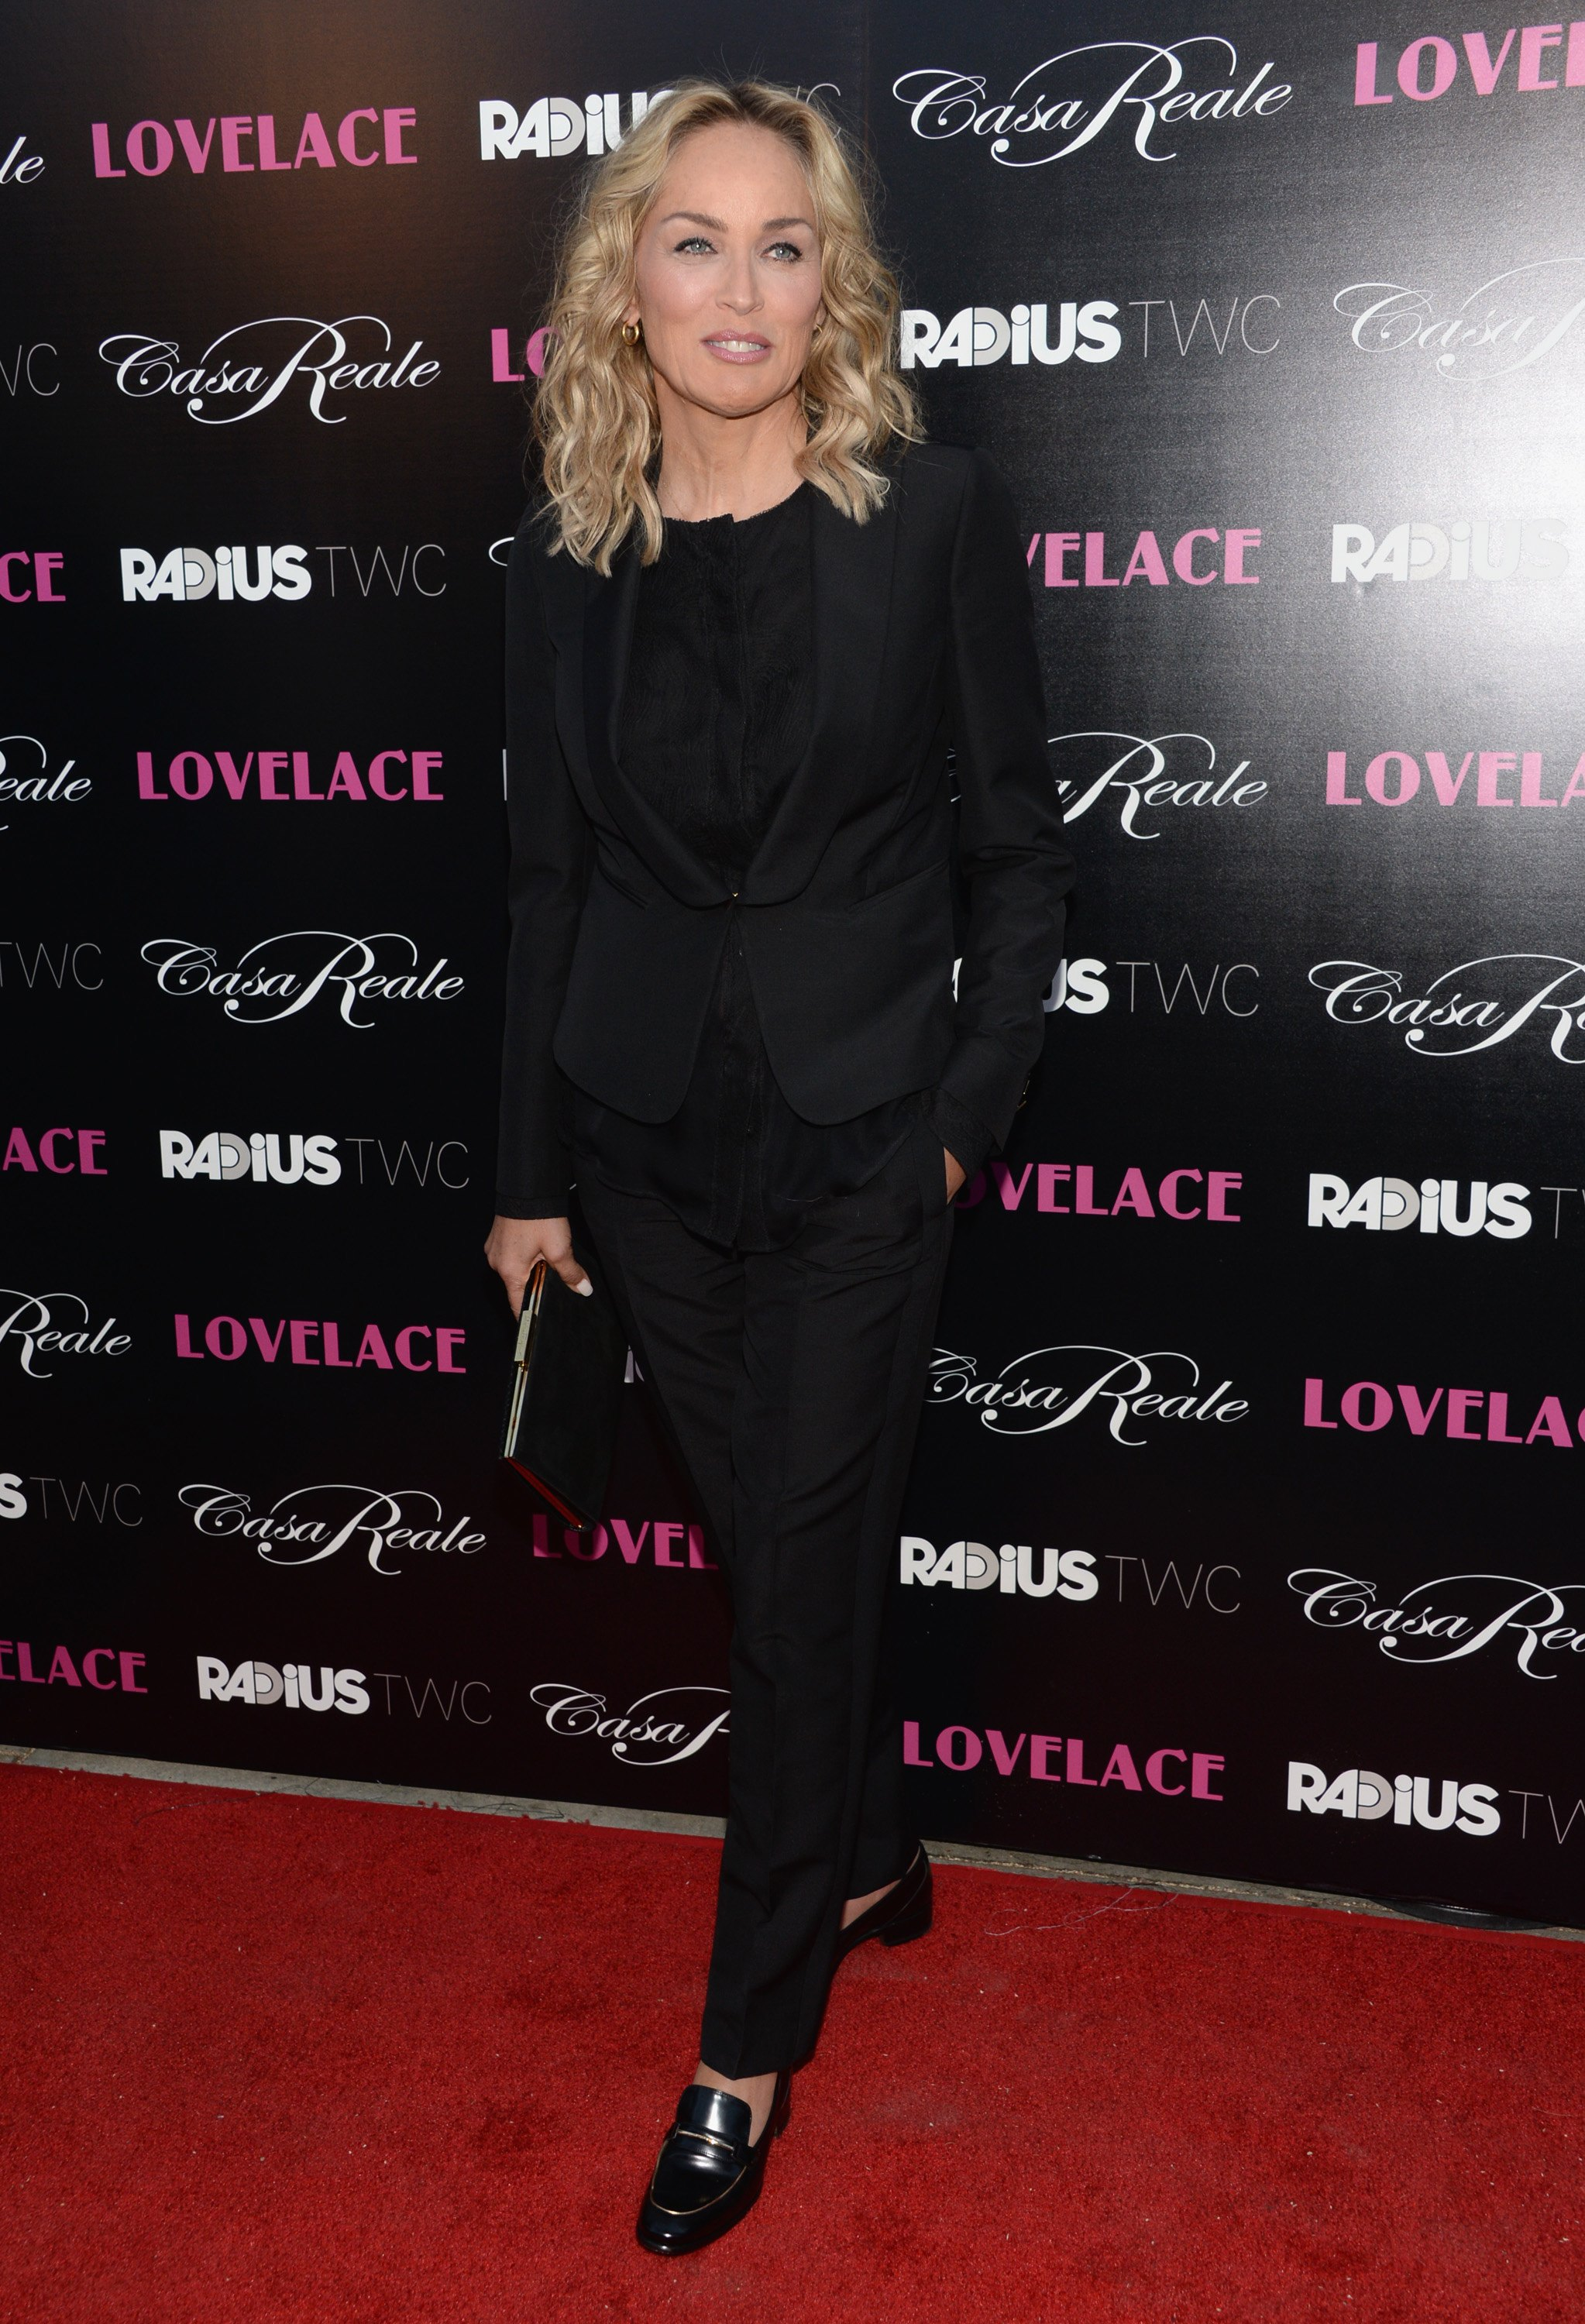 Sharon Stone's Lovelace red carpet look was so fierce, we just had to try our hand at styling a suit!